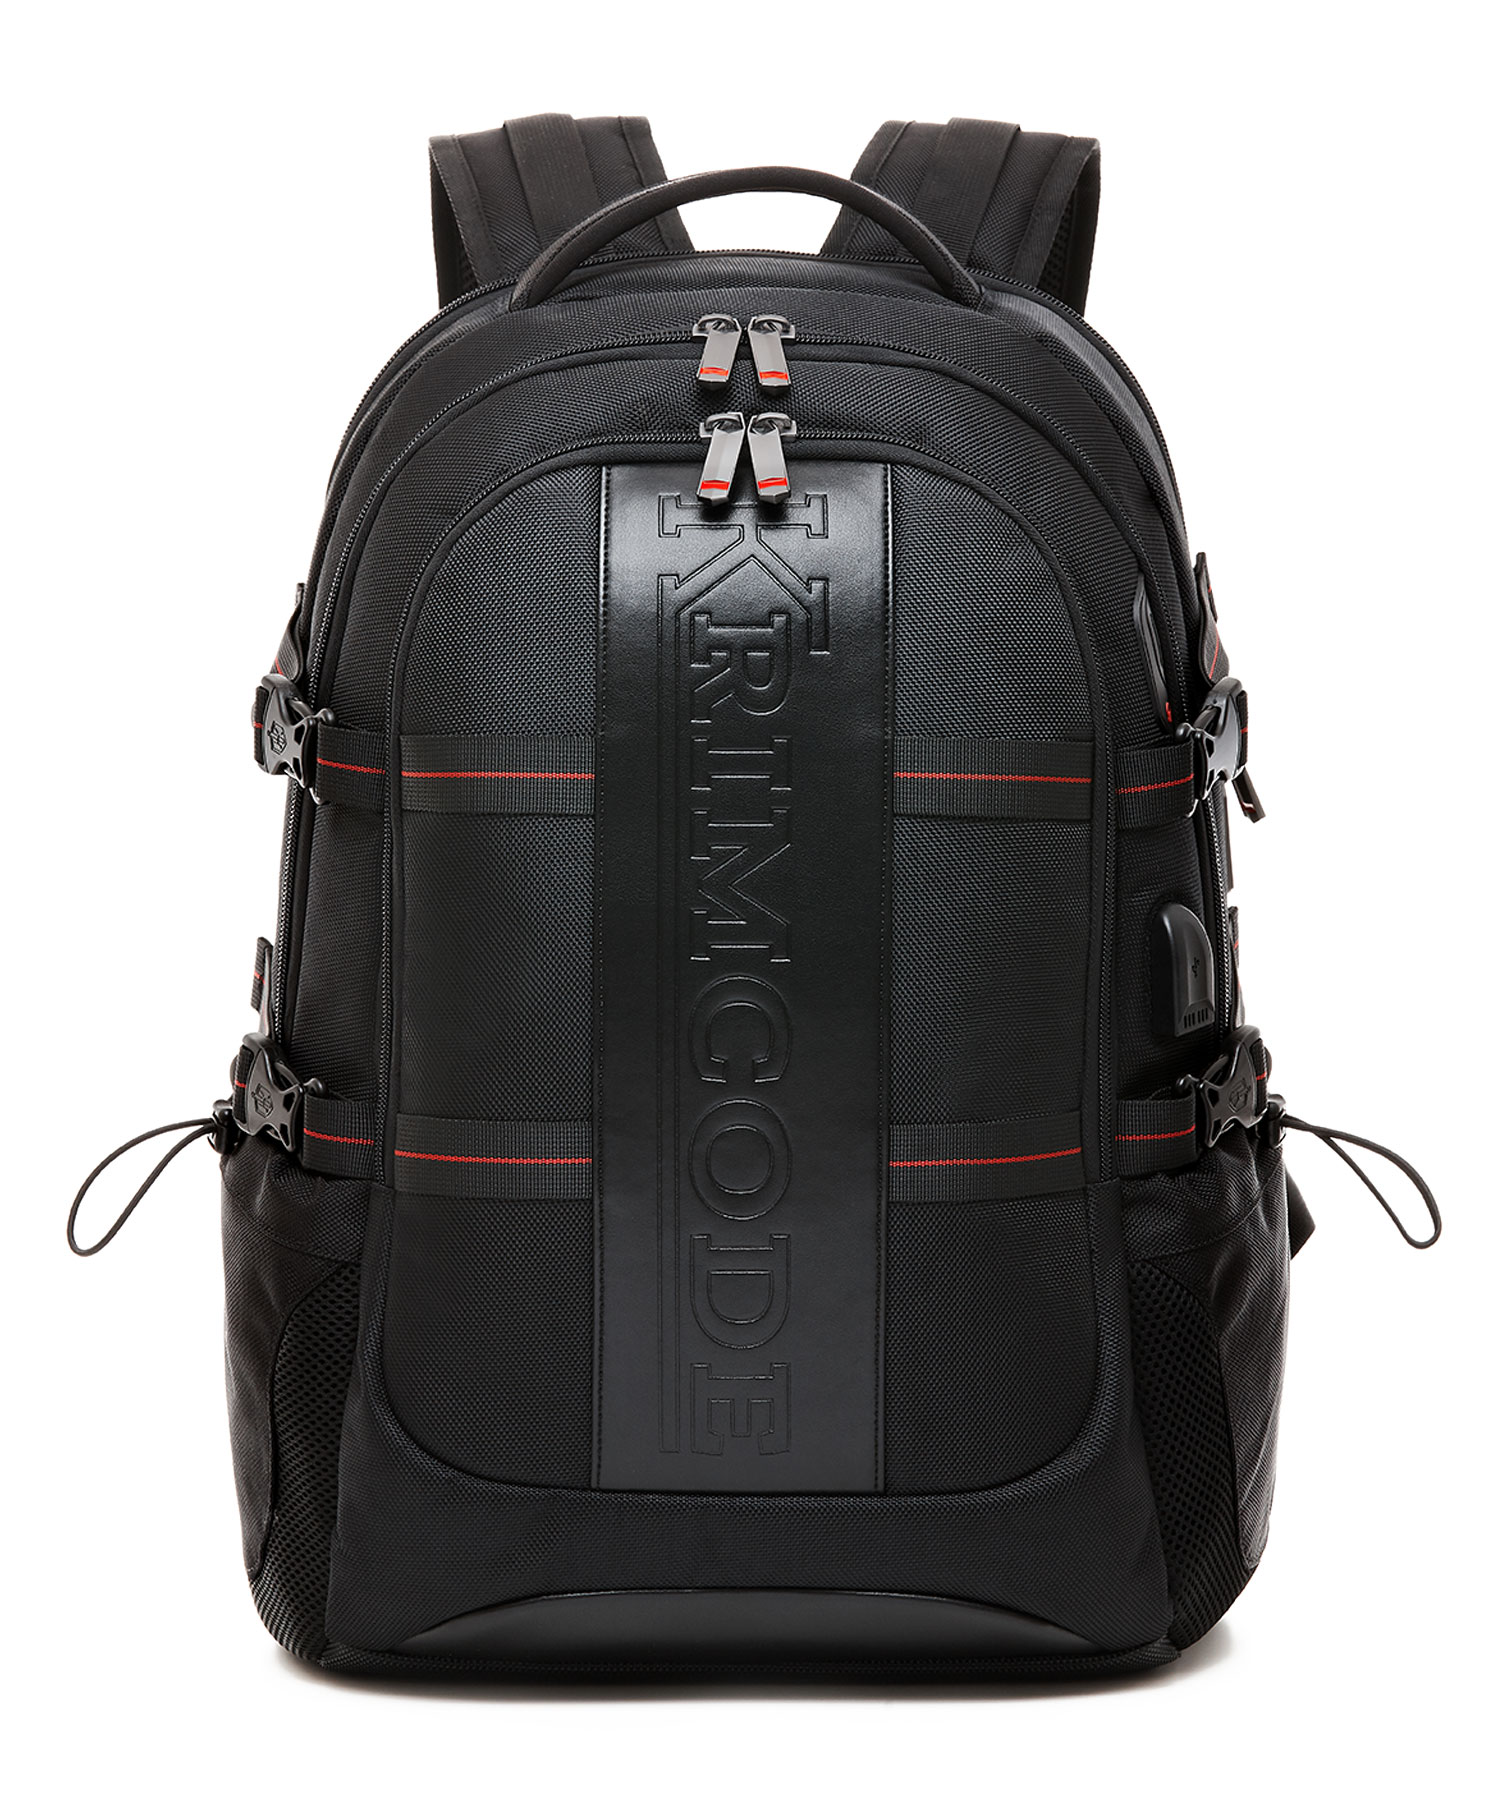 Krimcode Business Formal Notebook Backpack Front